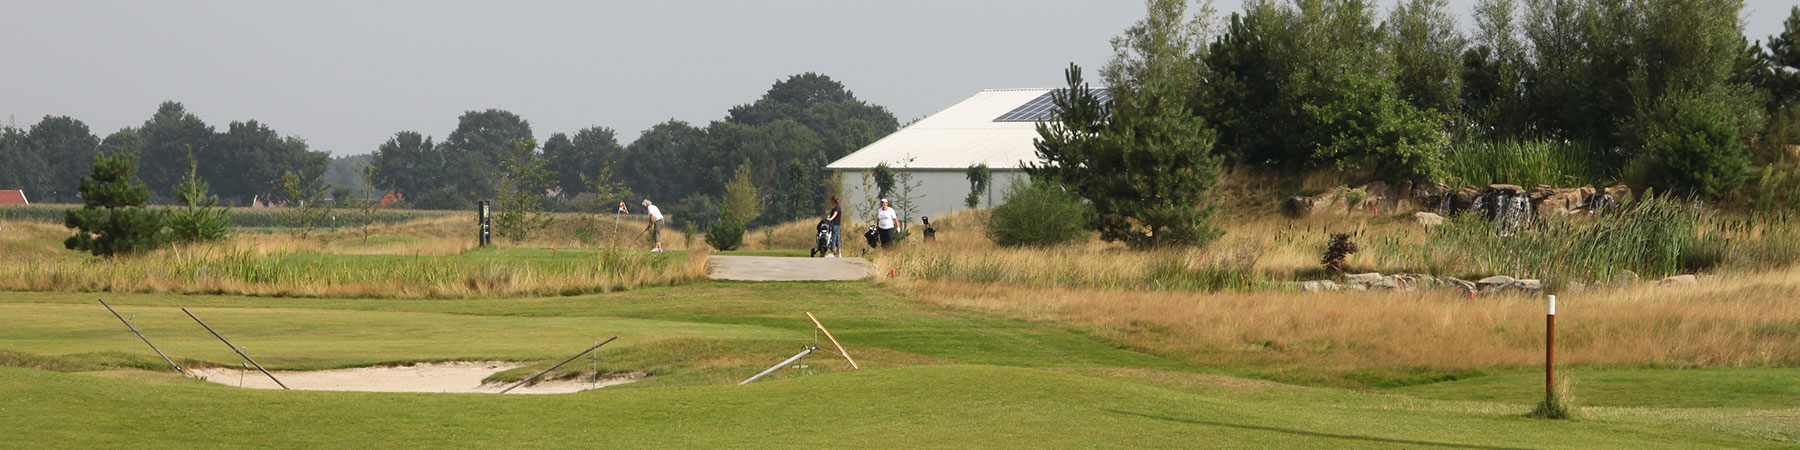 golfbaan-overloon2